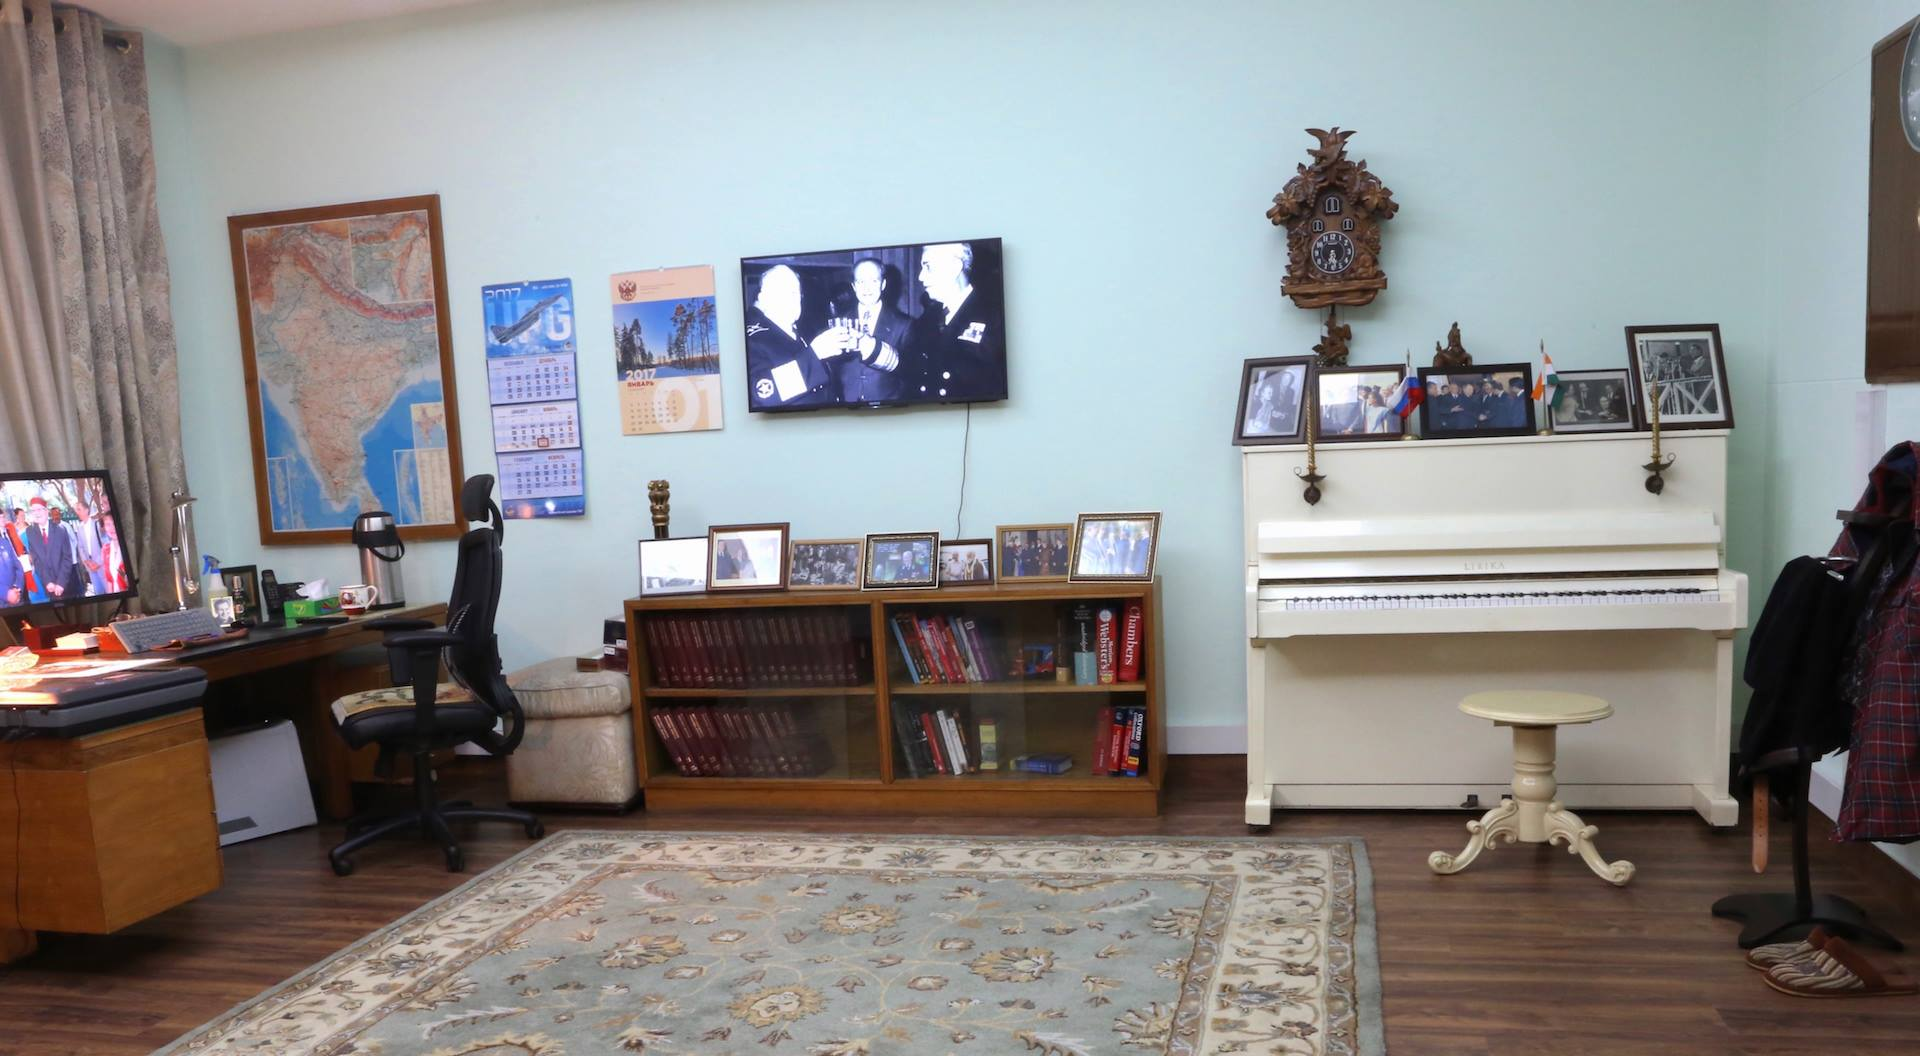 The museum recreates Alexander Kadakin's office and living room.